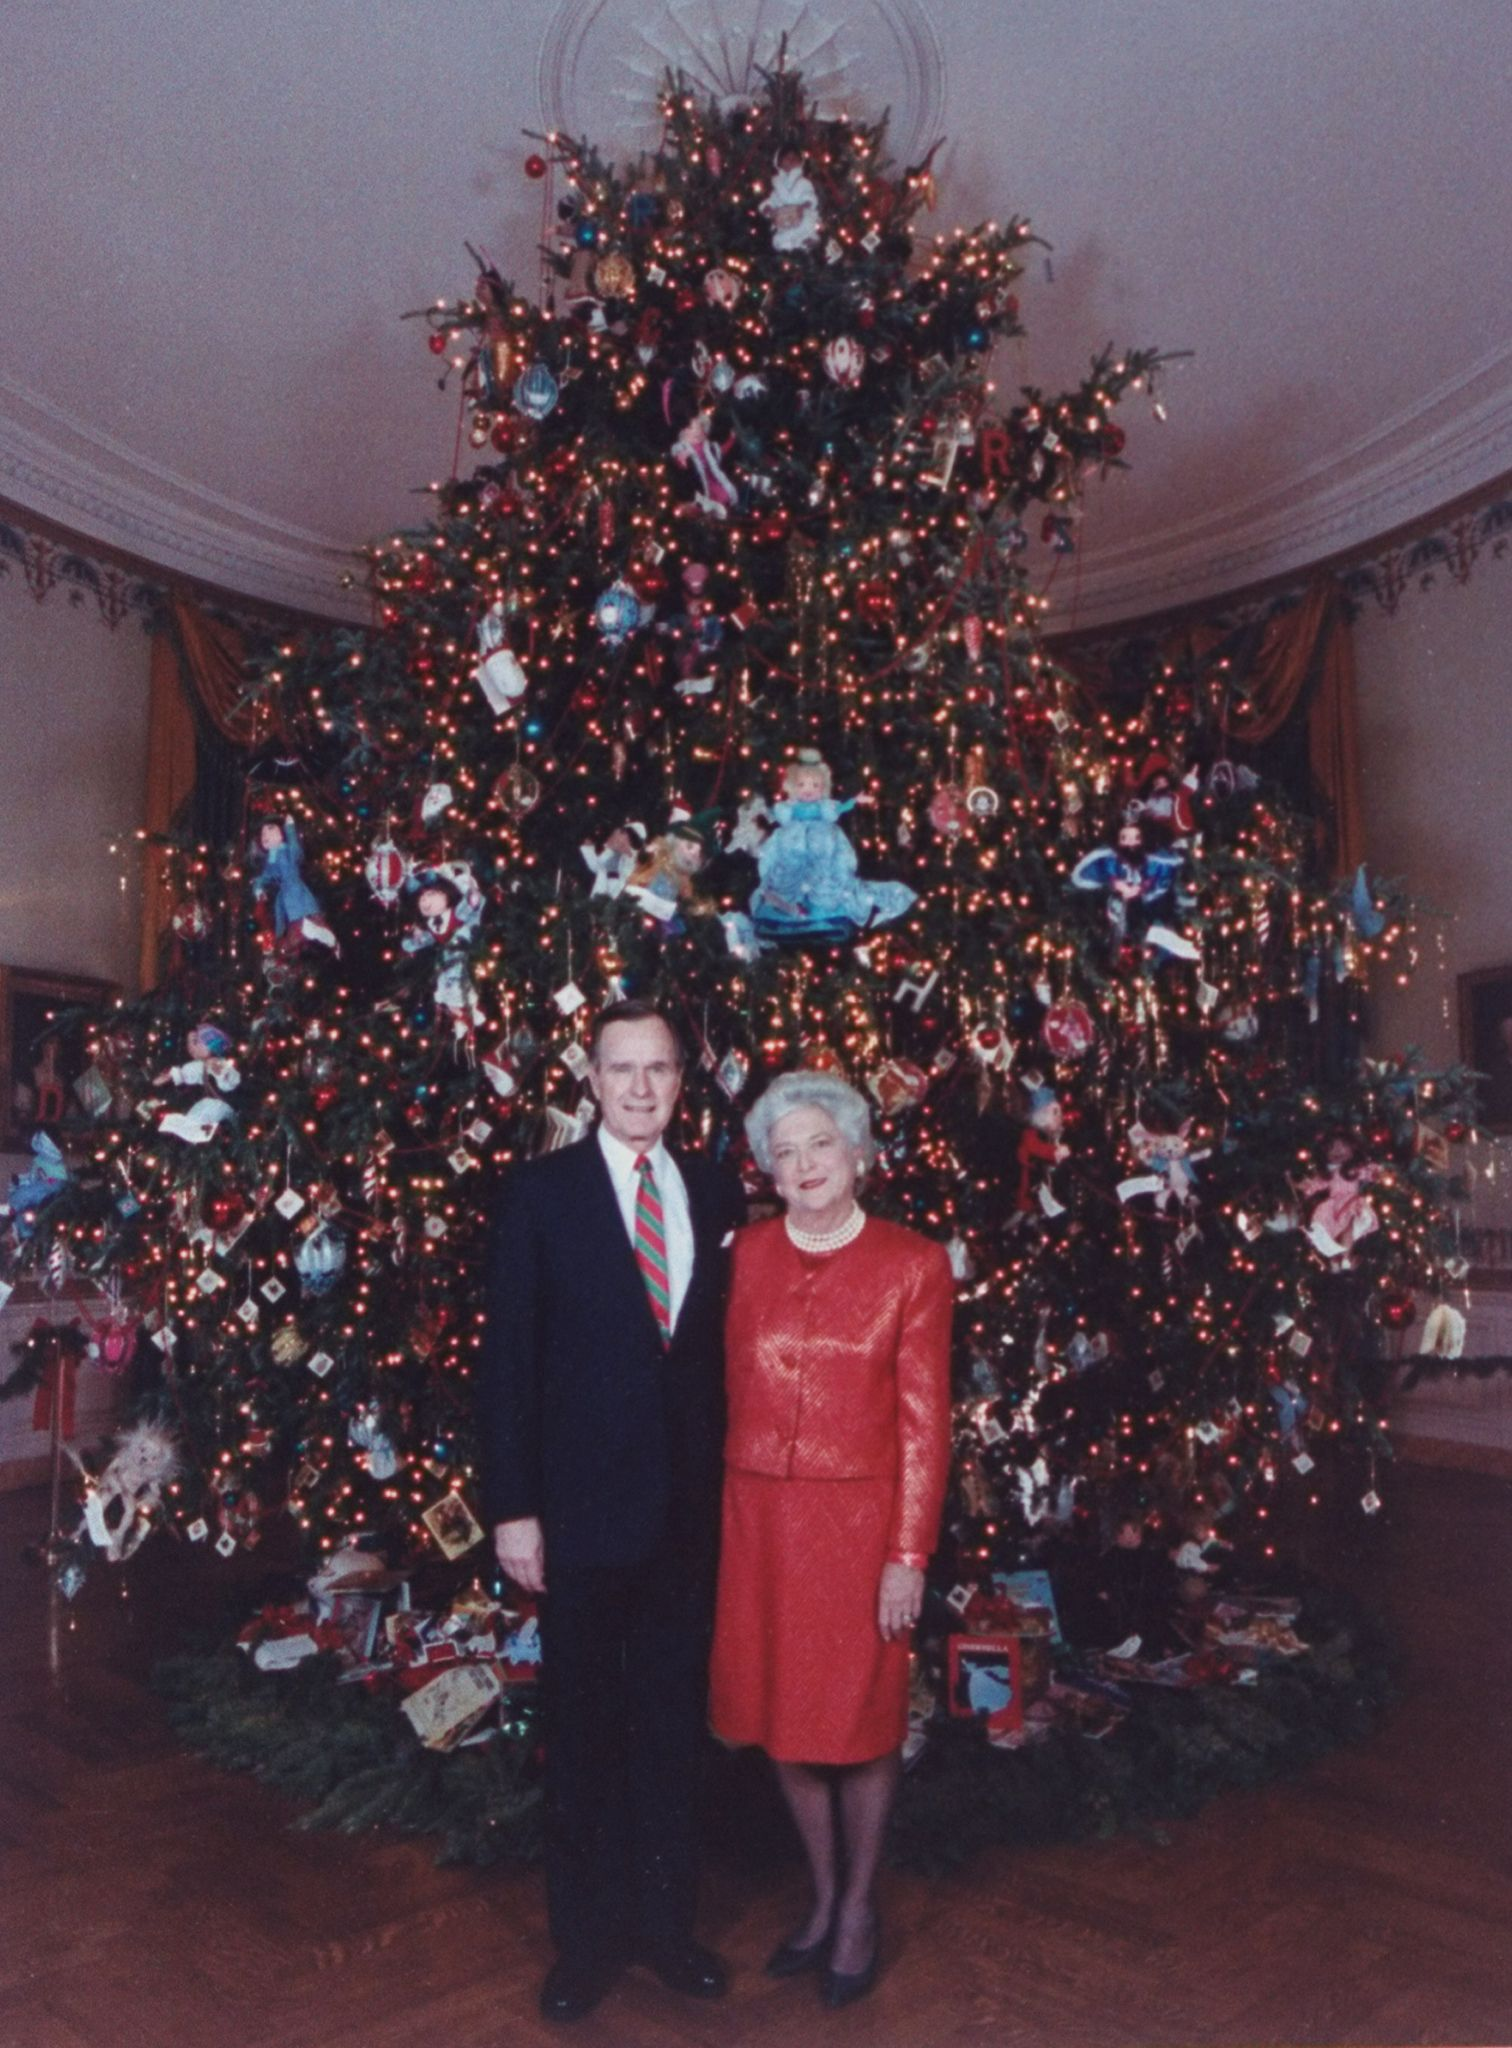 80 Years Of Christmas At The White House | The White House ...